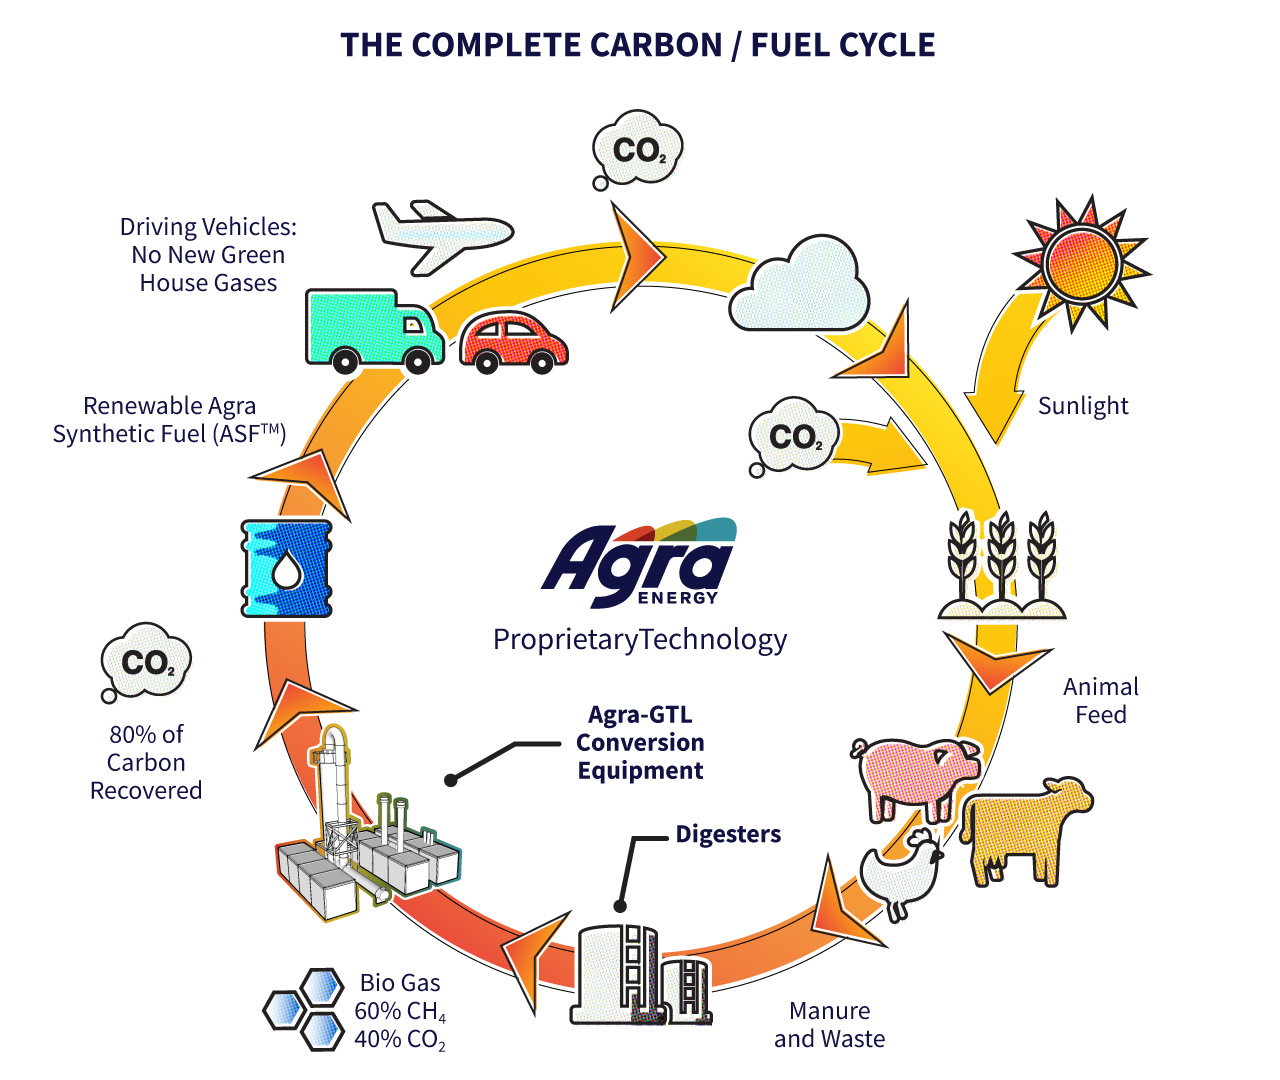 The Complete Carbon/Fuel Cycle